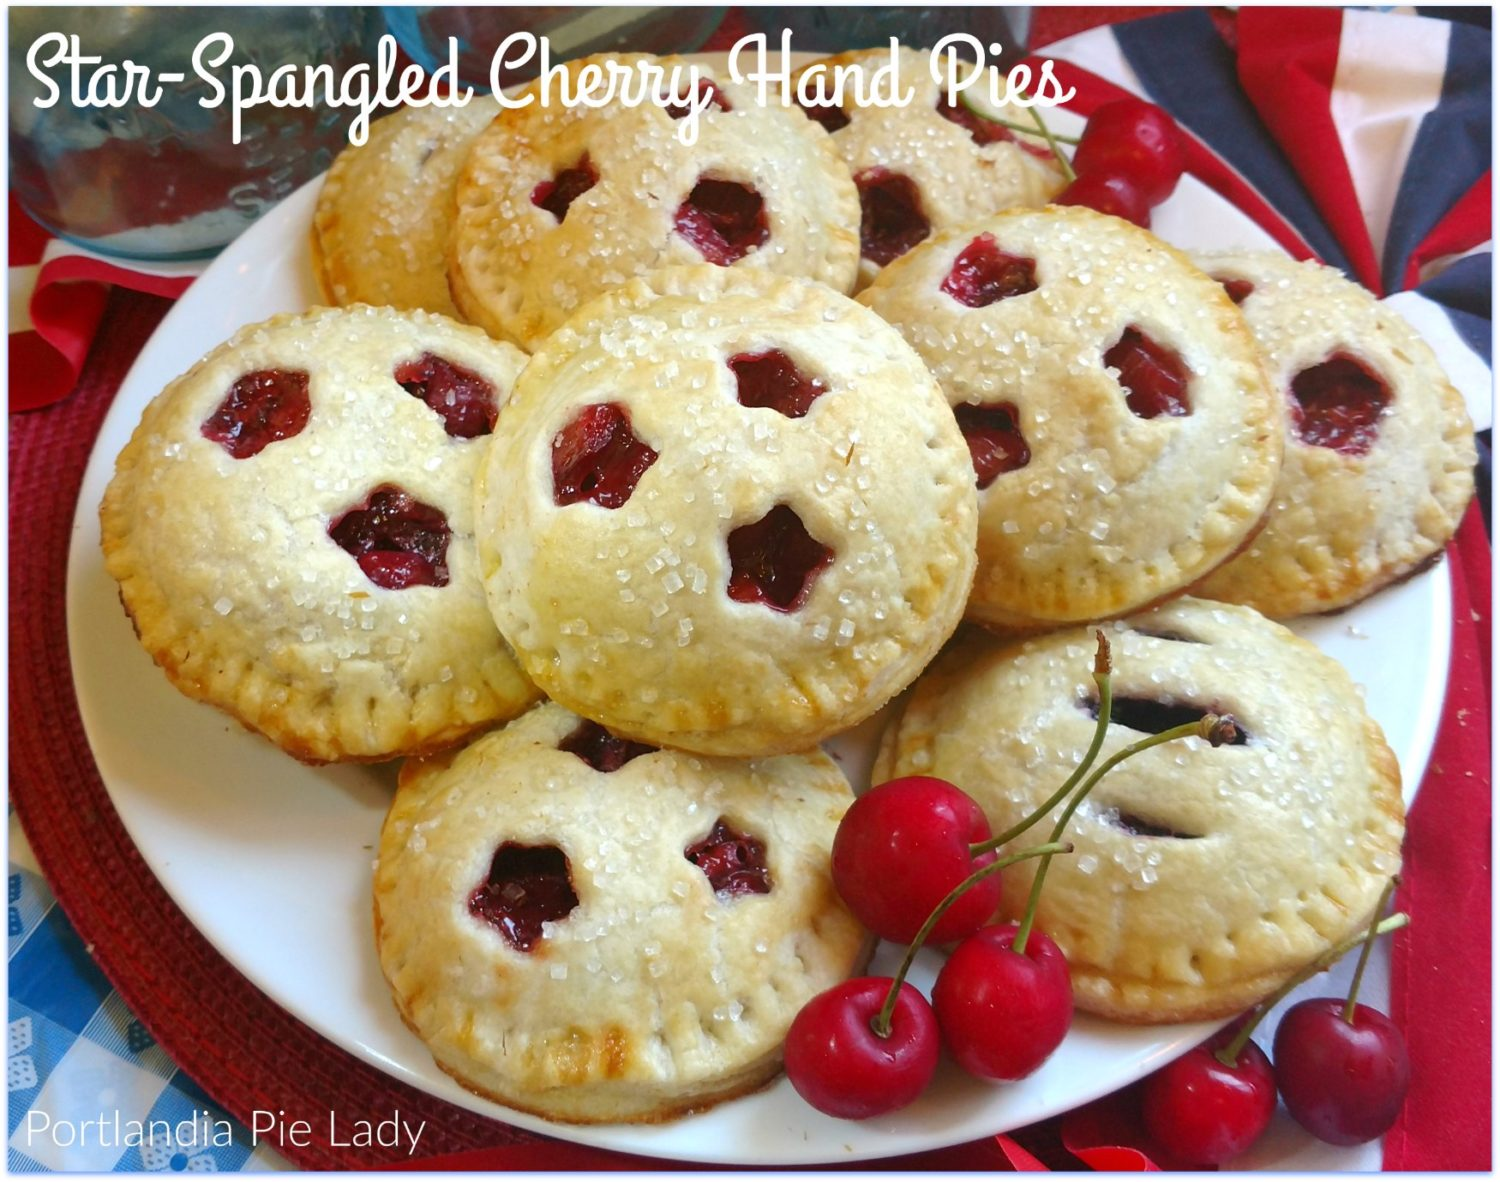 Star-Spangled Cherry Hand Pies: Tasty cherry hand pies with the perfect amount of sweetness, a touch of lemon zest, with your fresh-picked tart cherries baked in a flaky buttery crust!